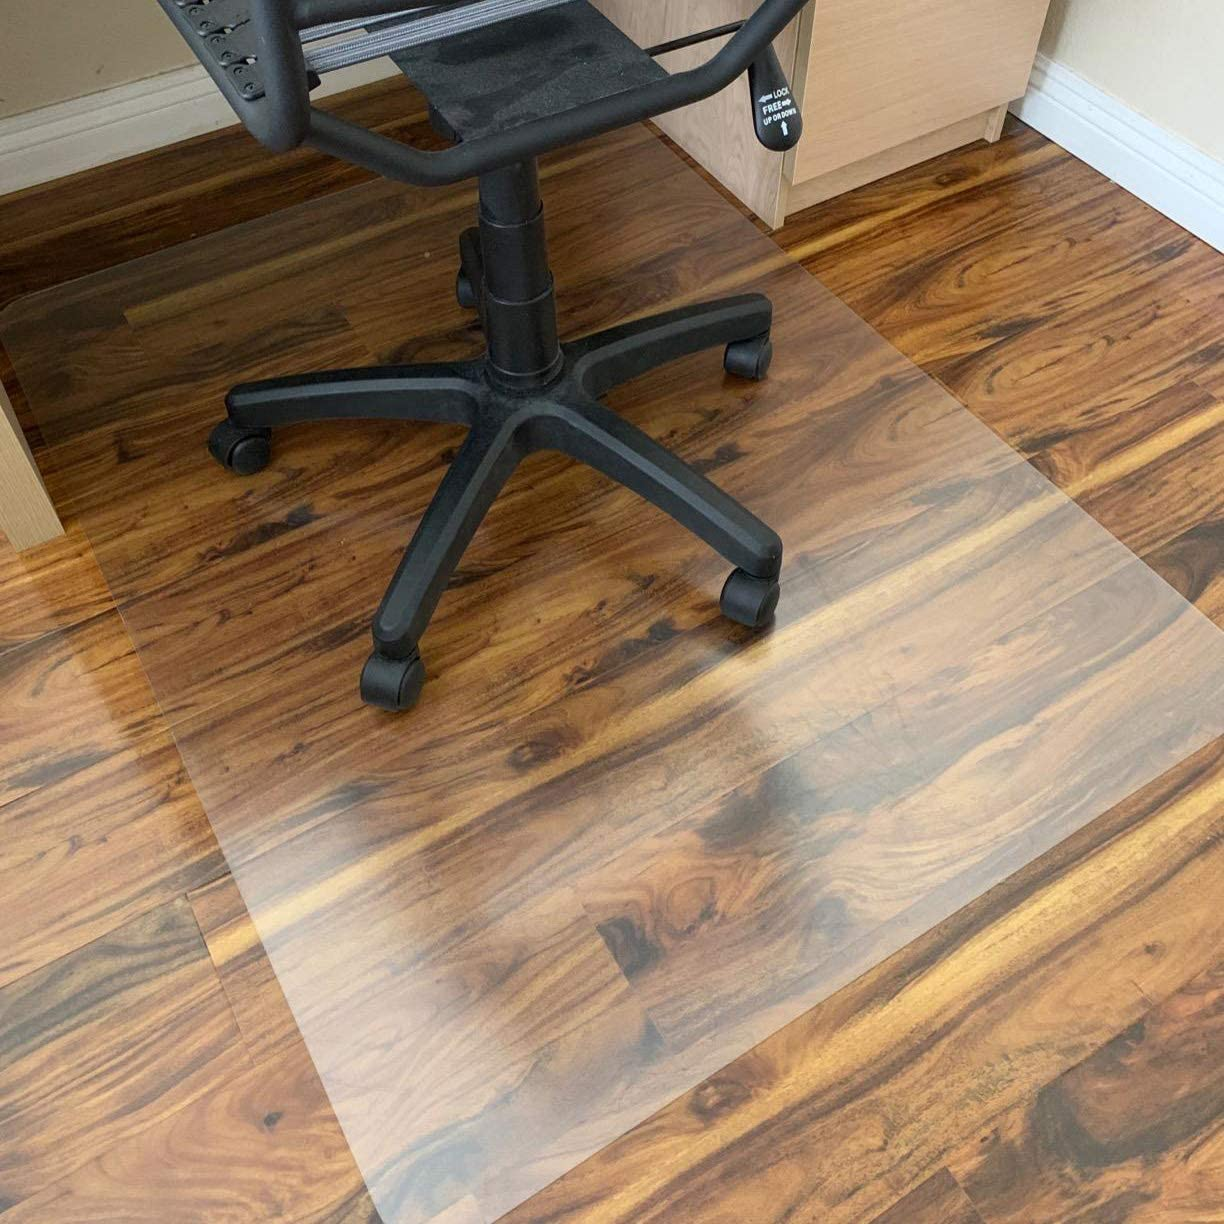 "Polycarbonate Office Chair Mat for Hardwood Floor, Floor Mat for Office Chair(Rolling Chairs)-Desk Mat&Office Mat for Hardwood Floor-Sturdy&Durable, Immediately Flat When Taken Out of Box: 36""x48"""